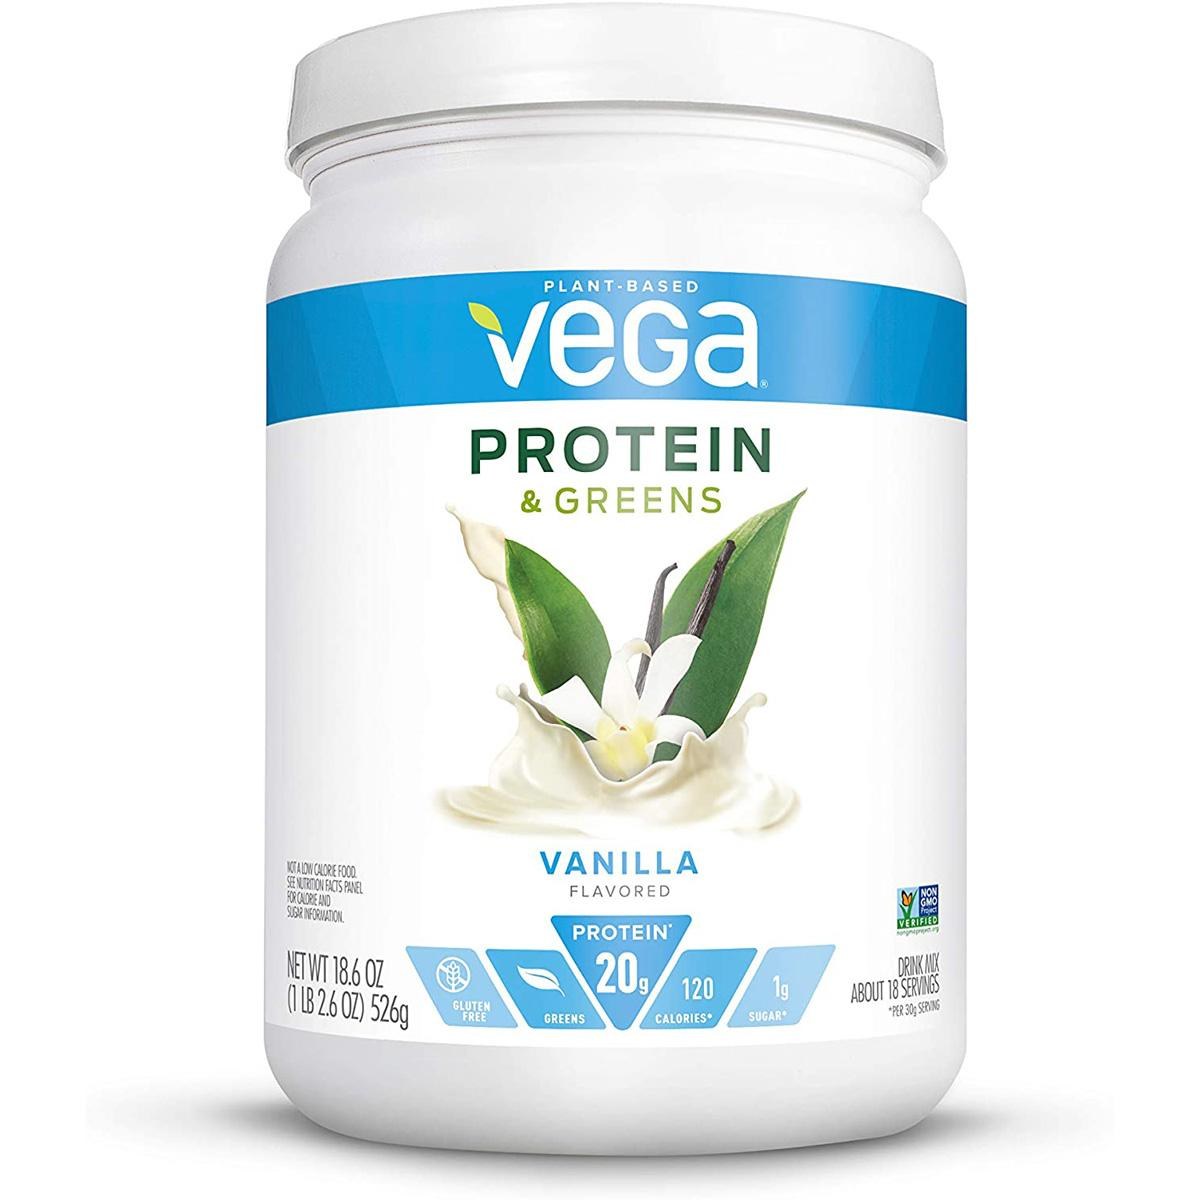 Vega Protein and Greens Plant Based Protein Powder for $12.99 Shipped